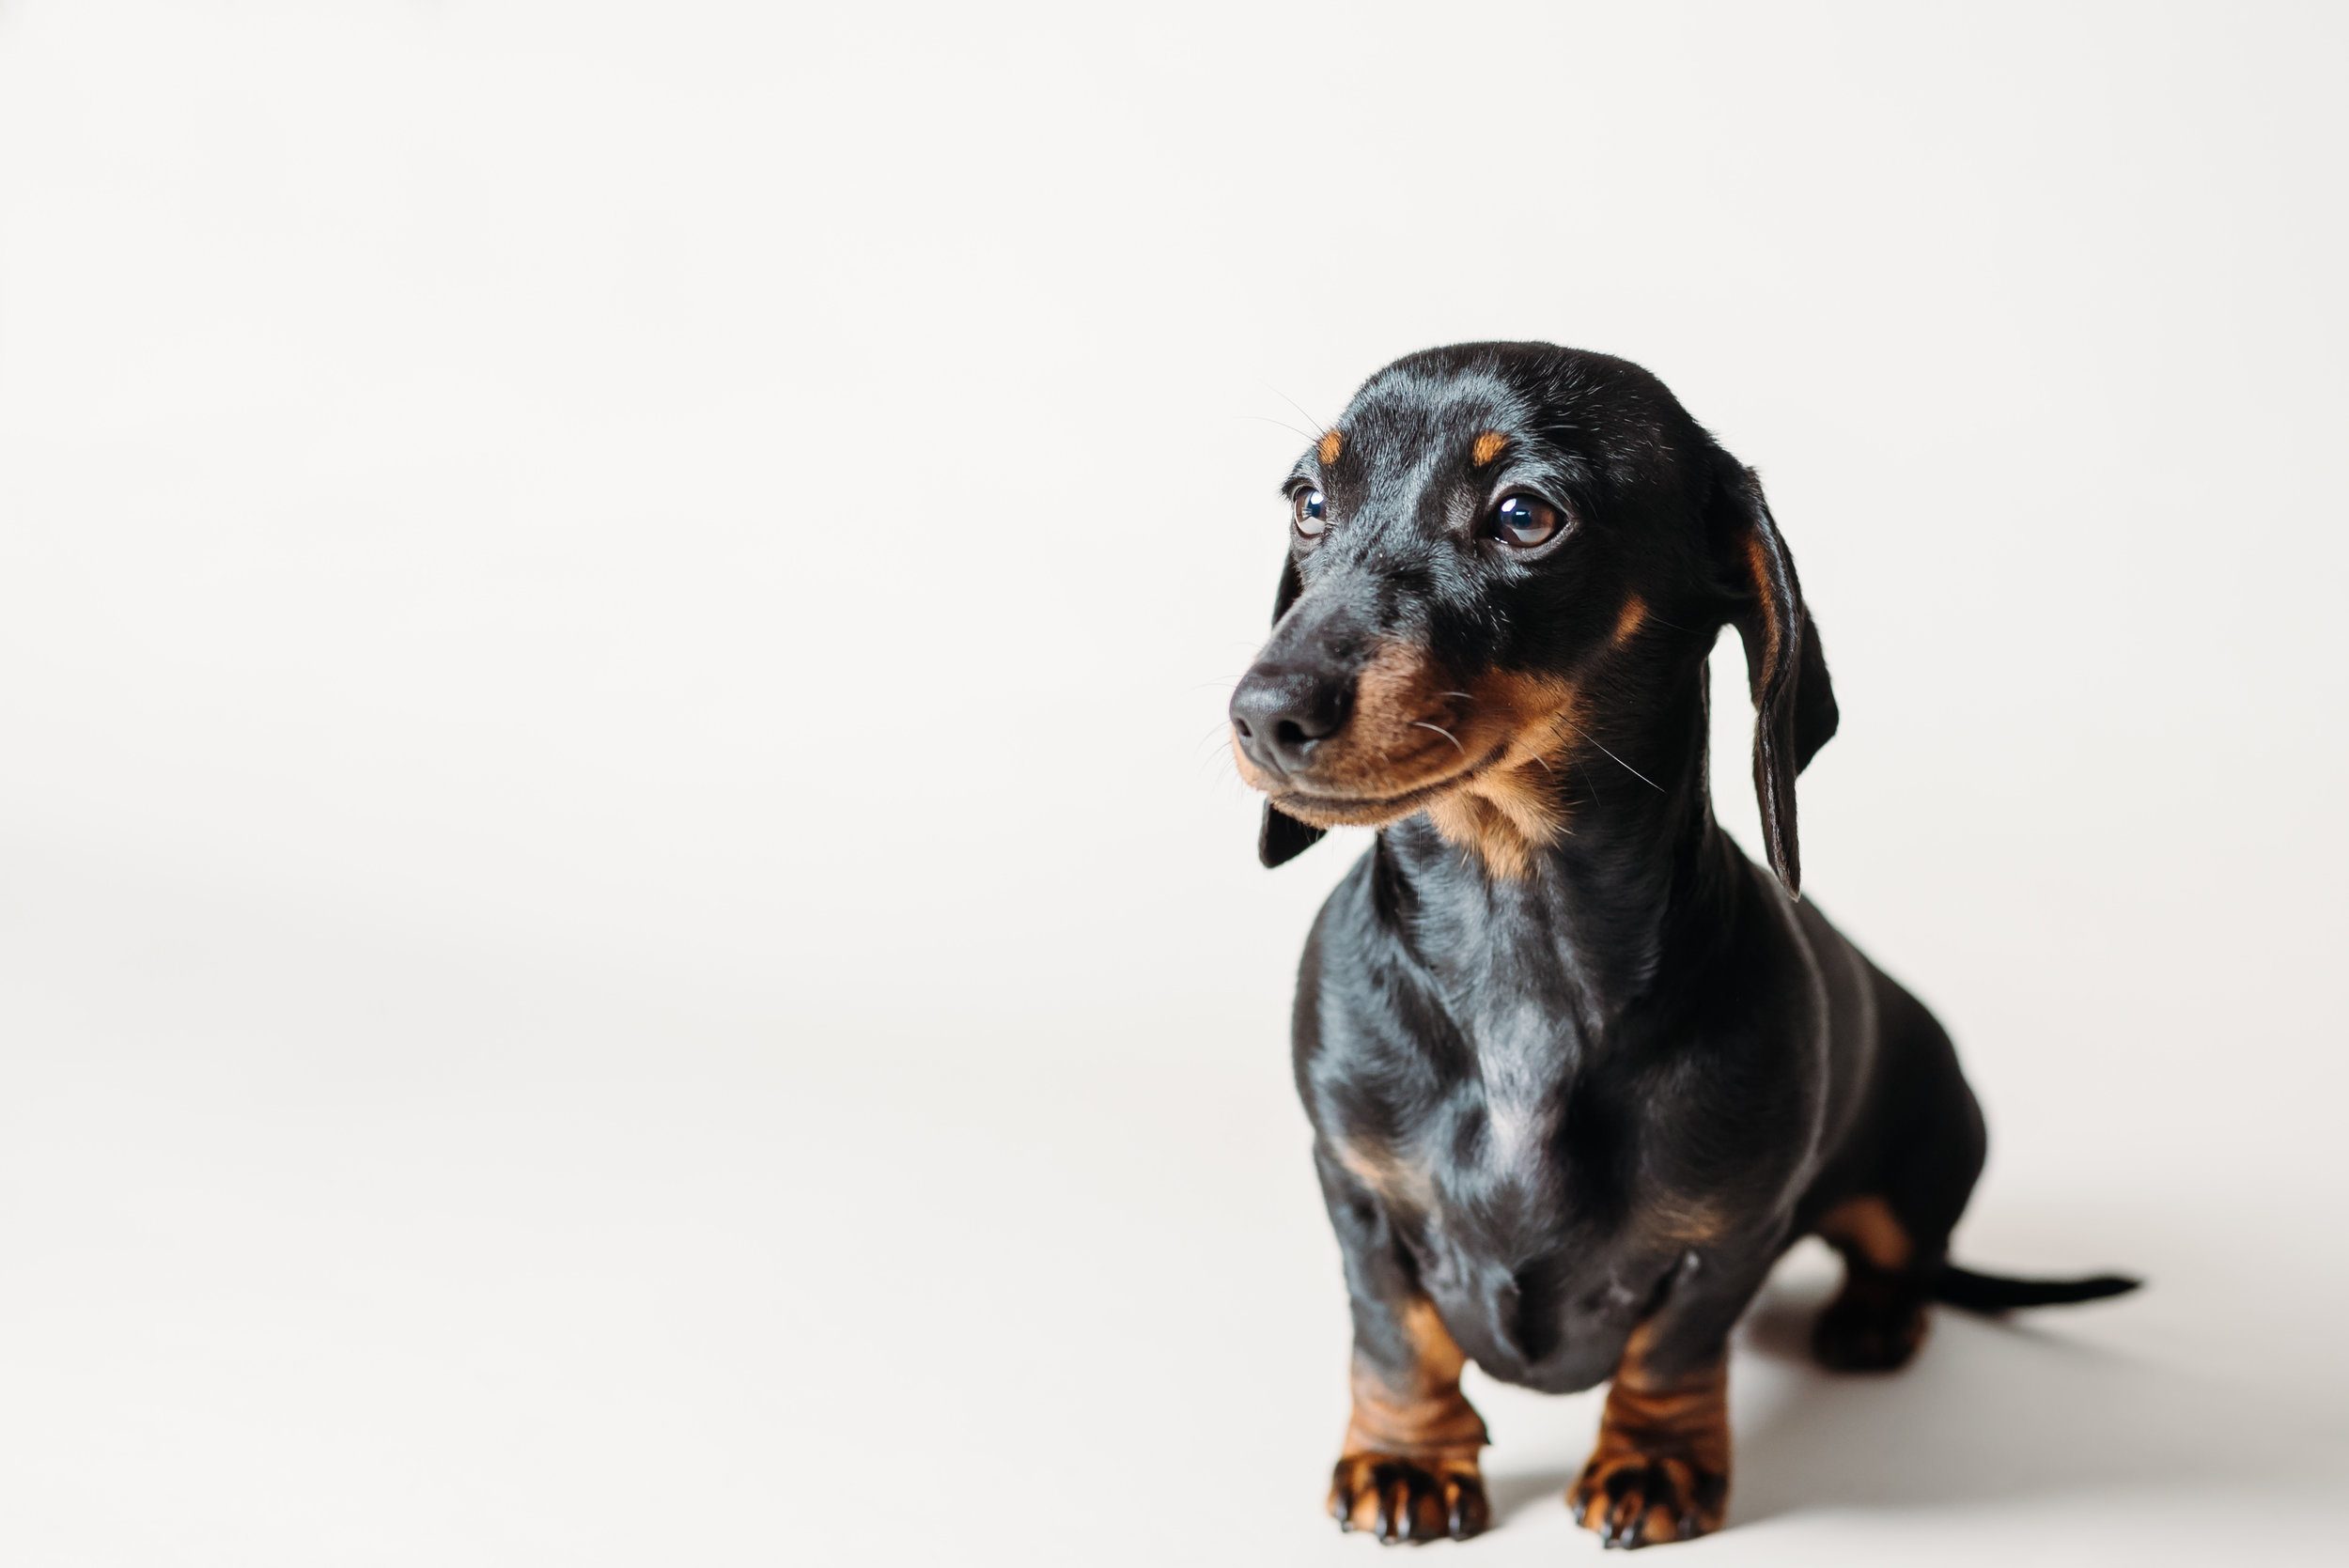 Black and tan mini dachshund - lancashire